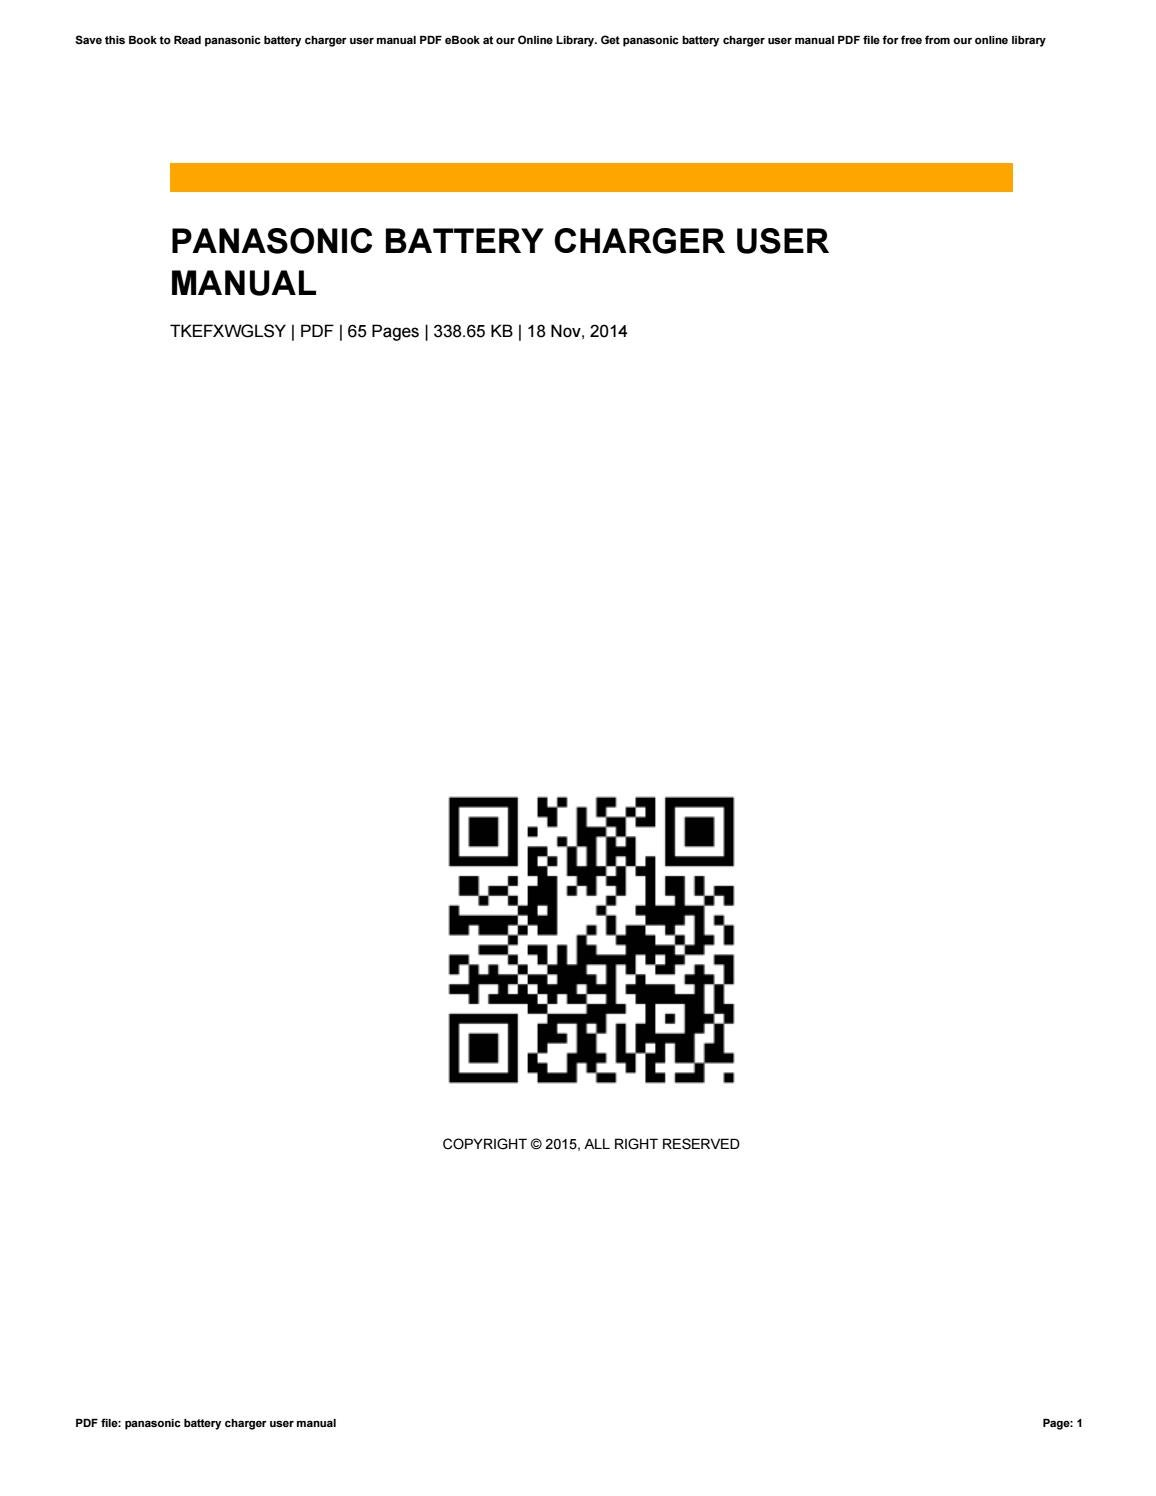 Panasonic battery charger user manual by ThomasRahn3356